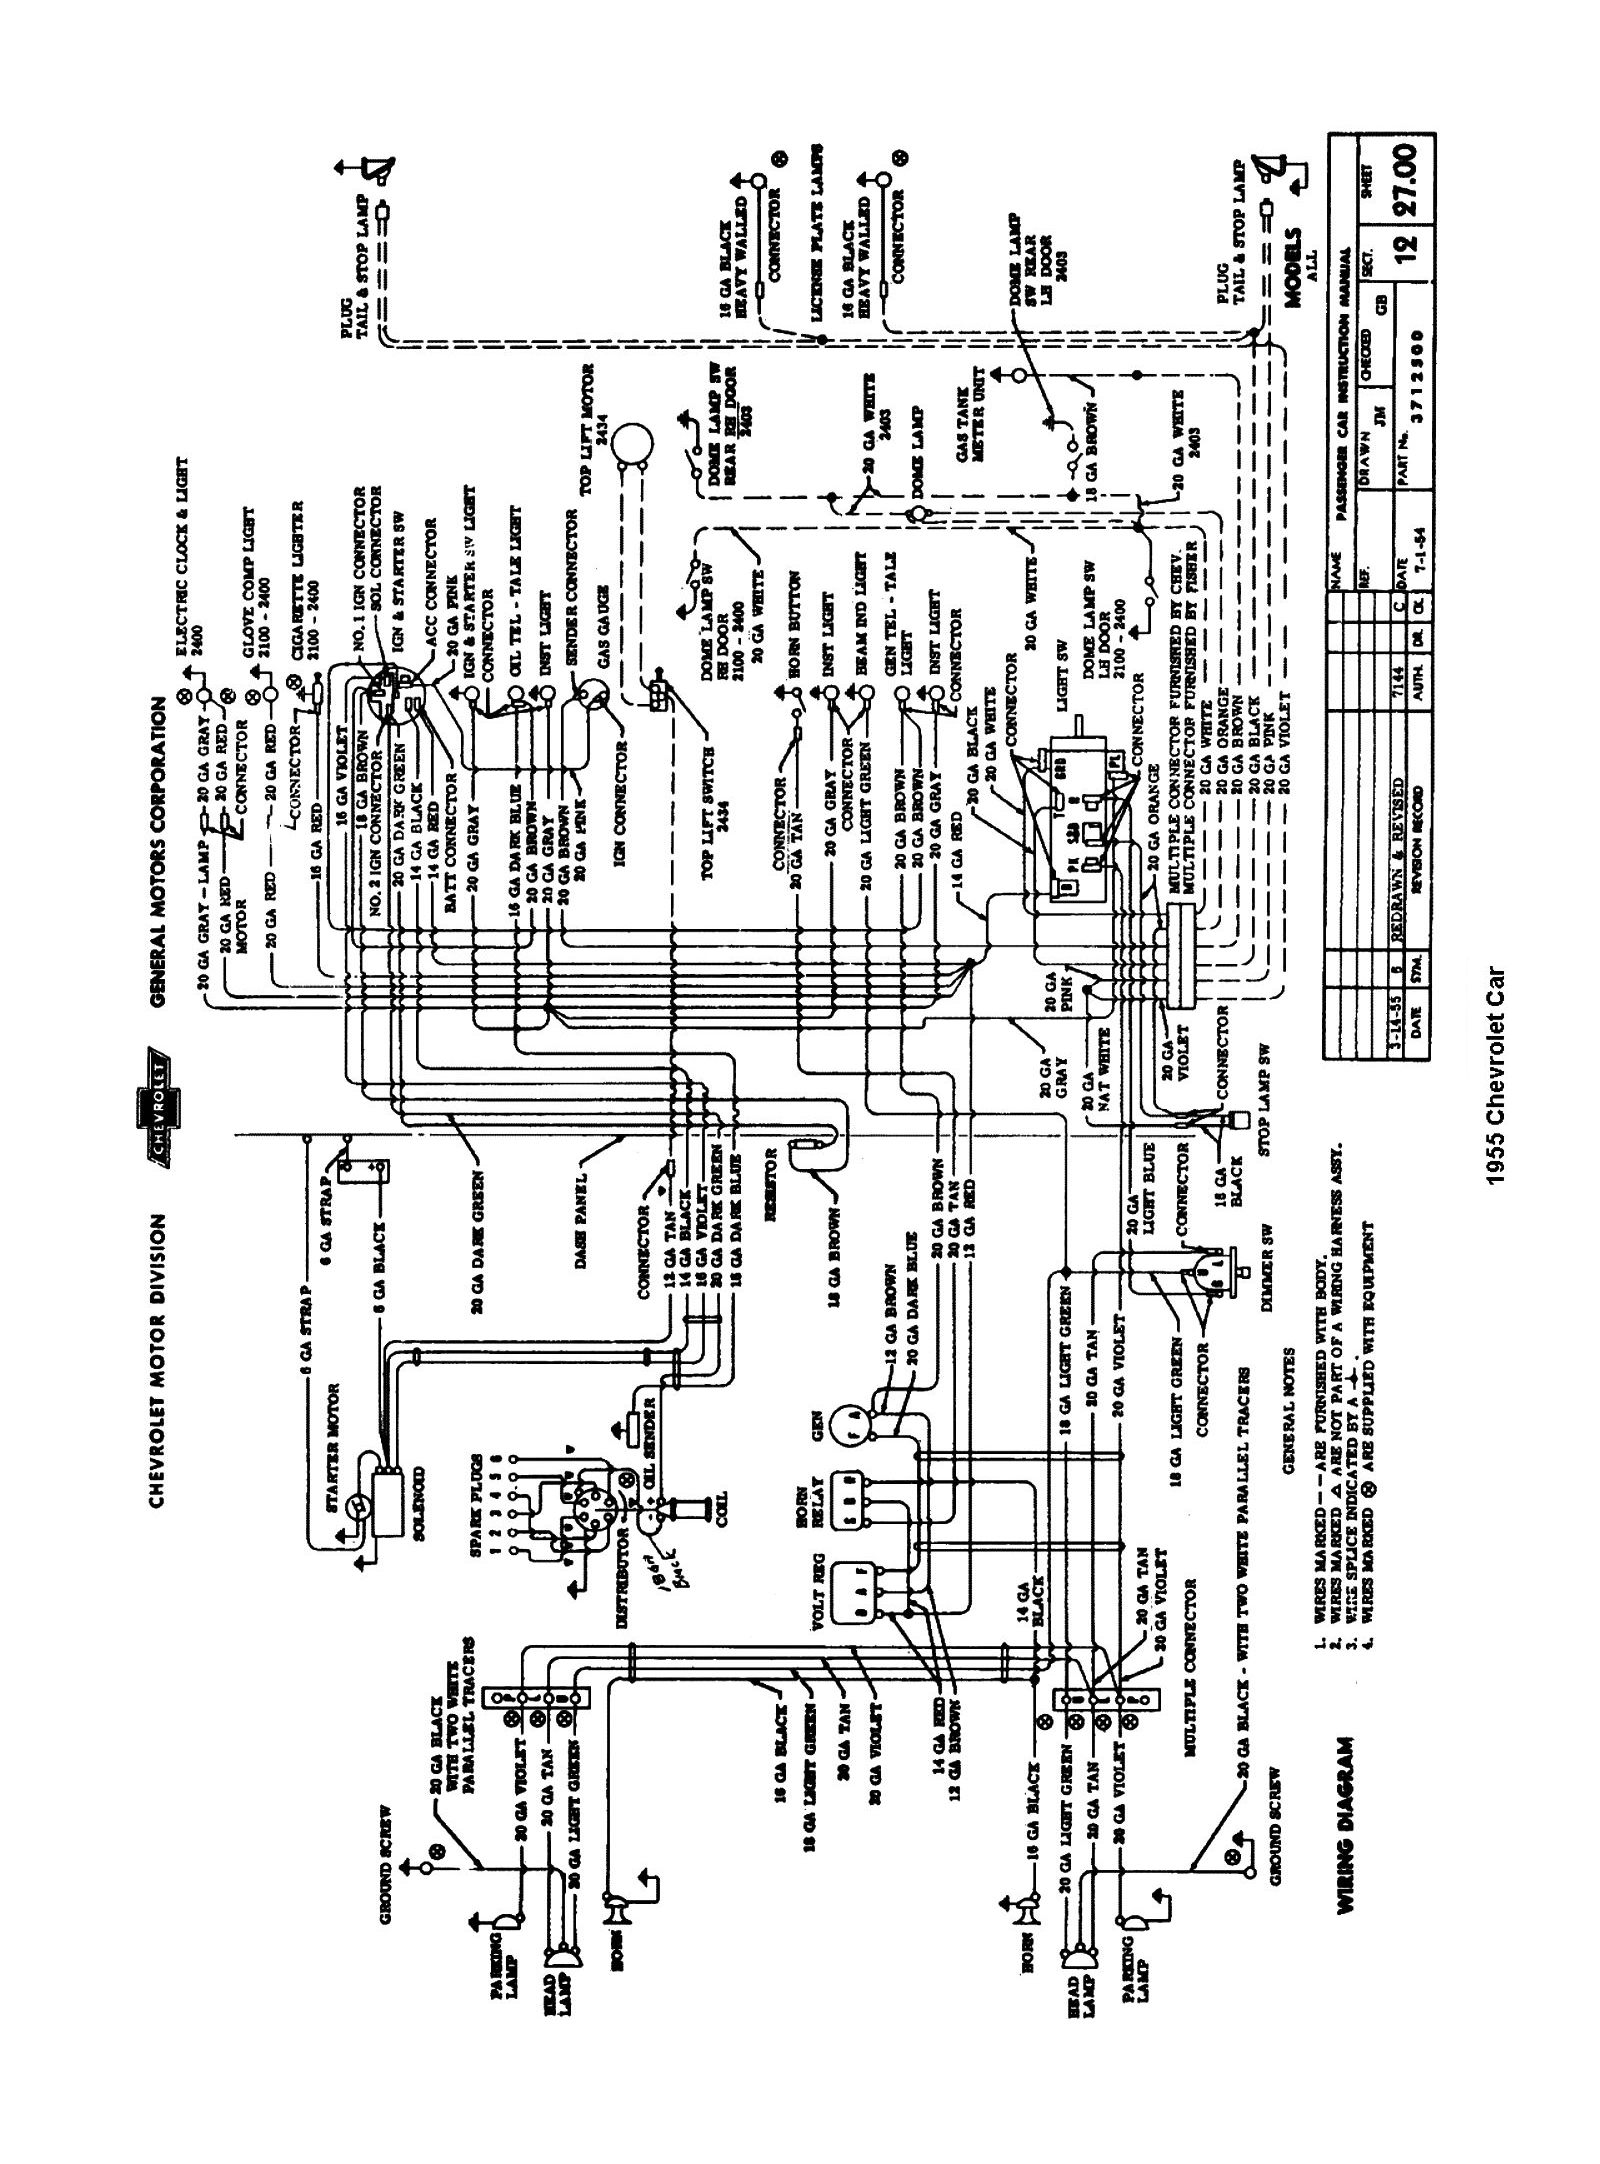 1957 gmc pickup wiring diagram wiring diagrams